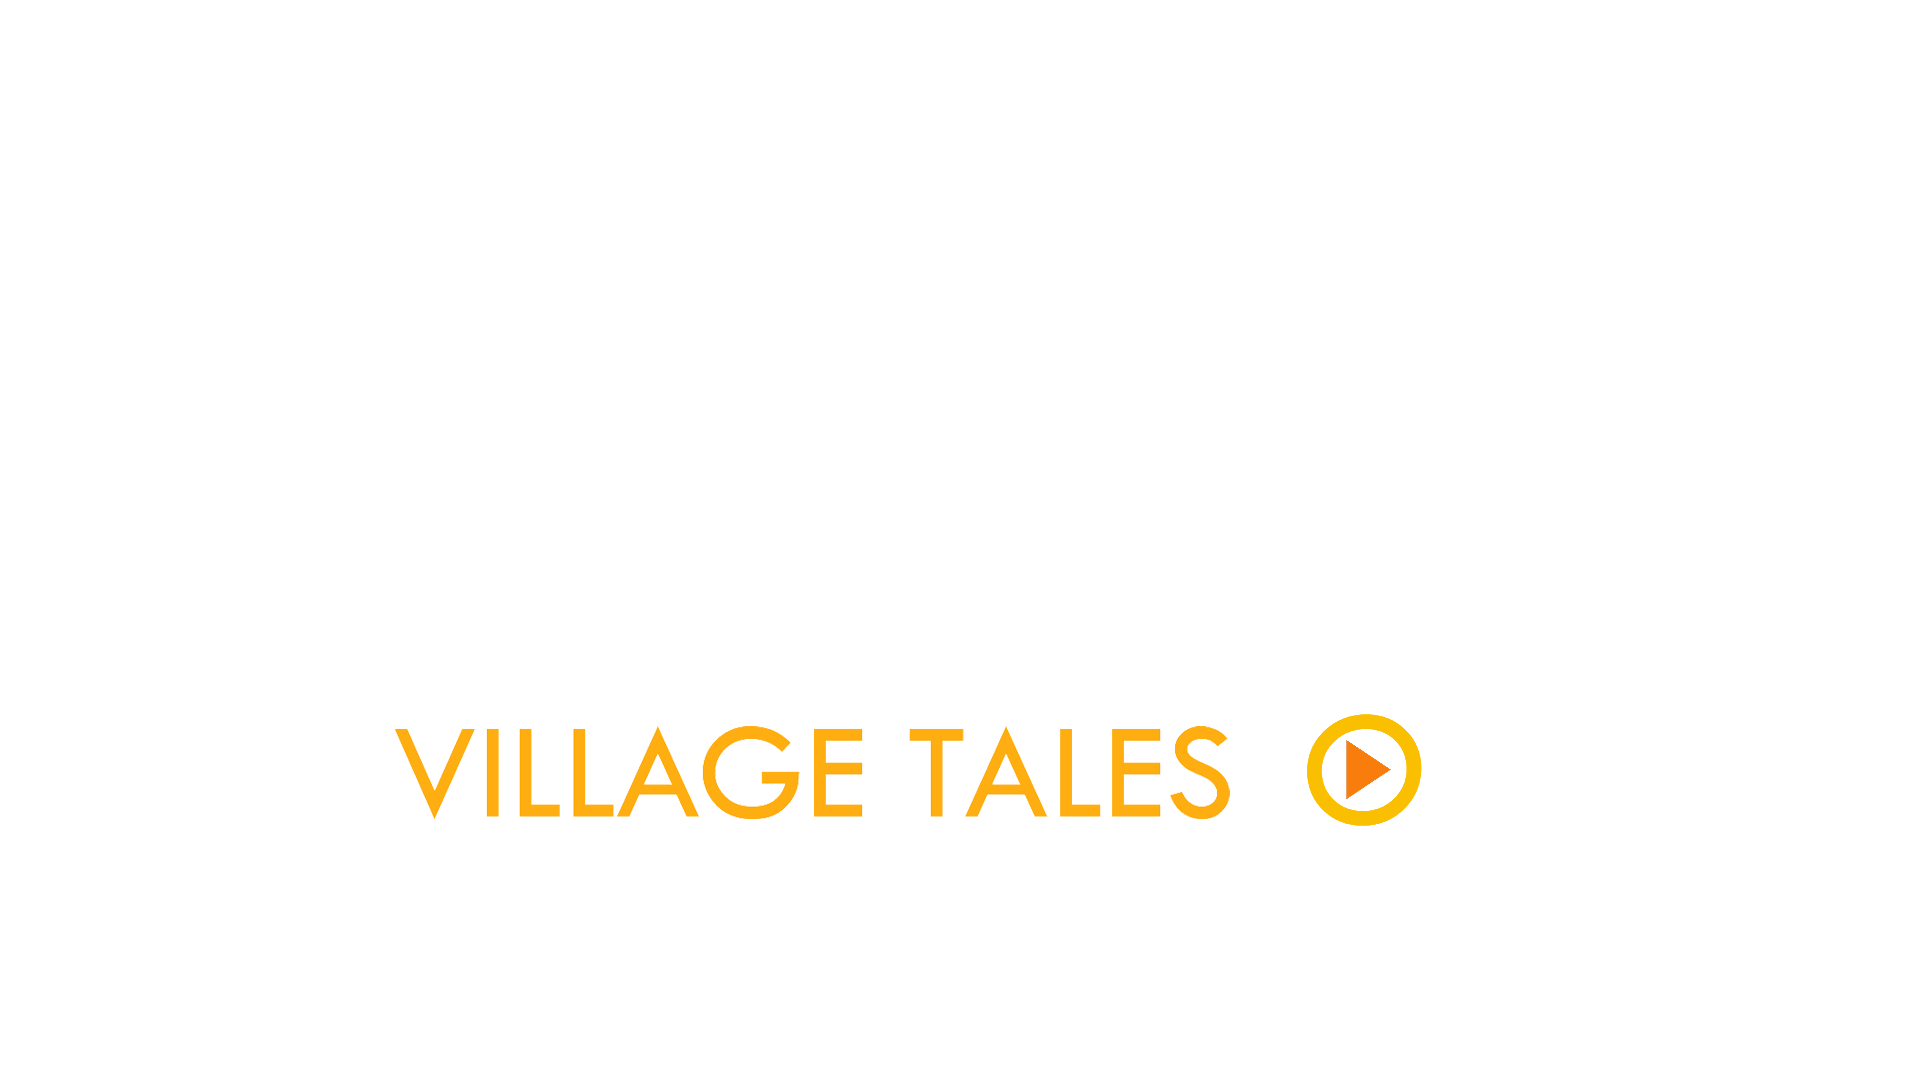 village-tales-TEXT